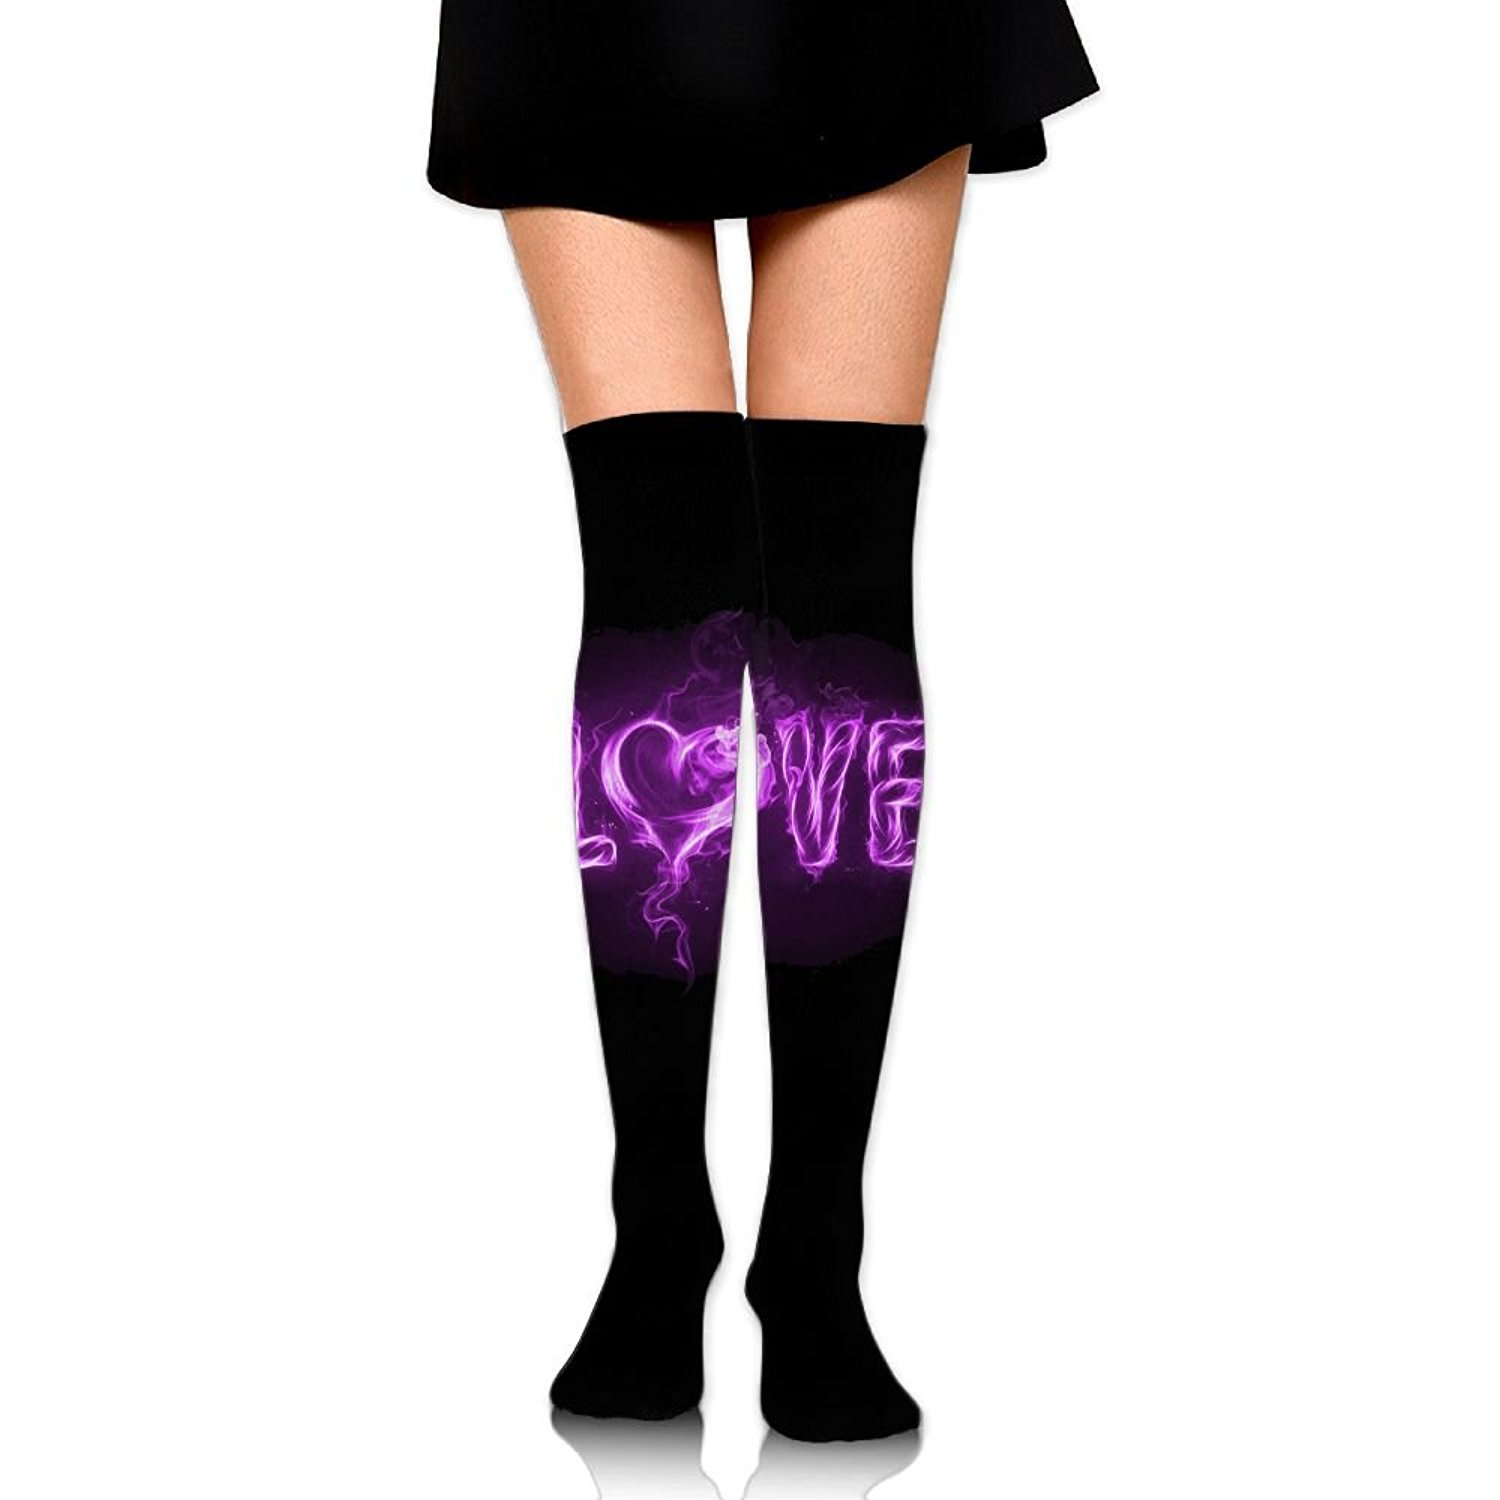 SOURCE POINT Womwn's Long Socks Love Printing Stocking Sexy Knee High Socks